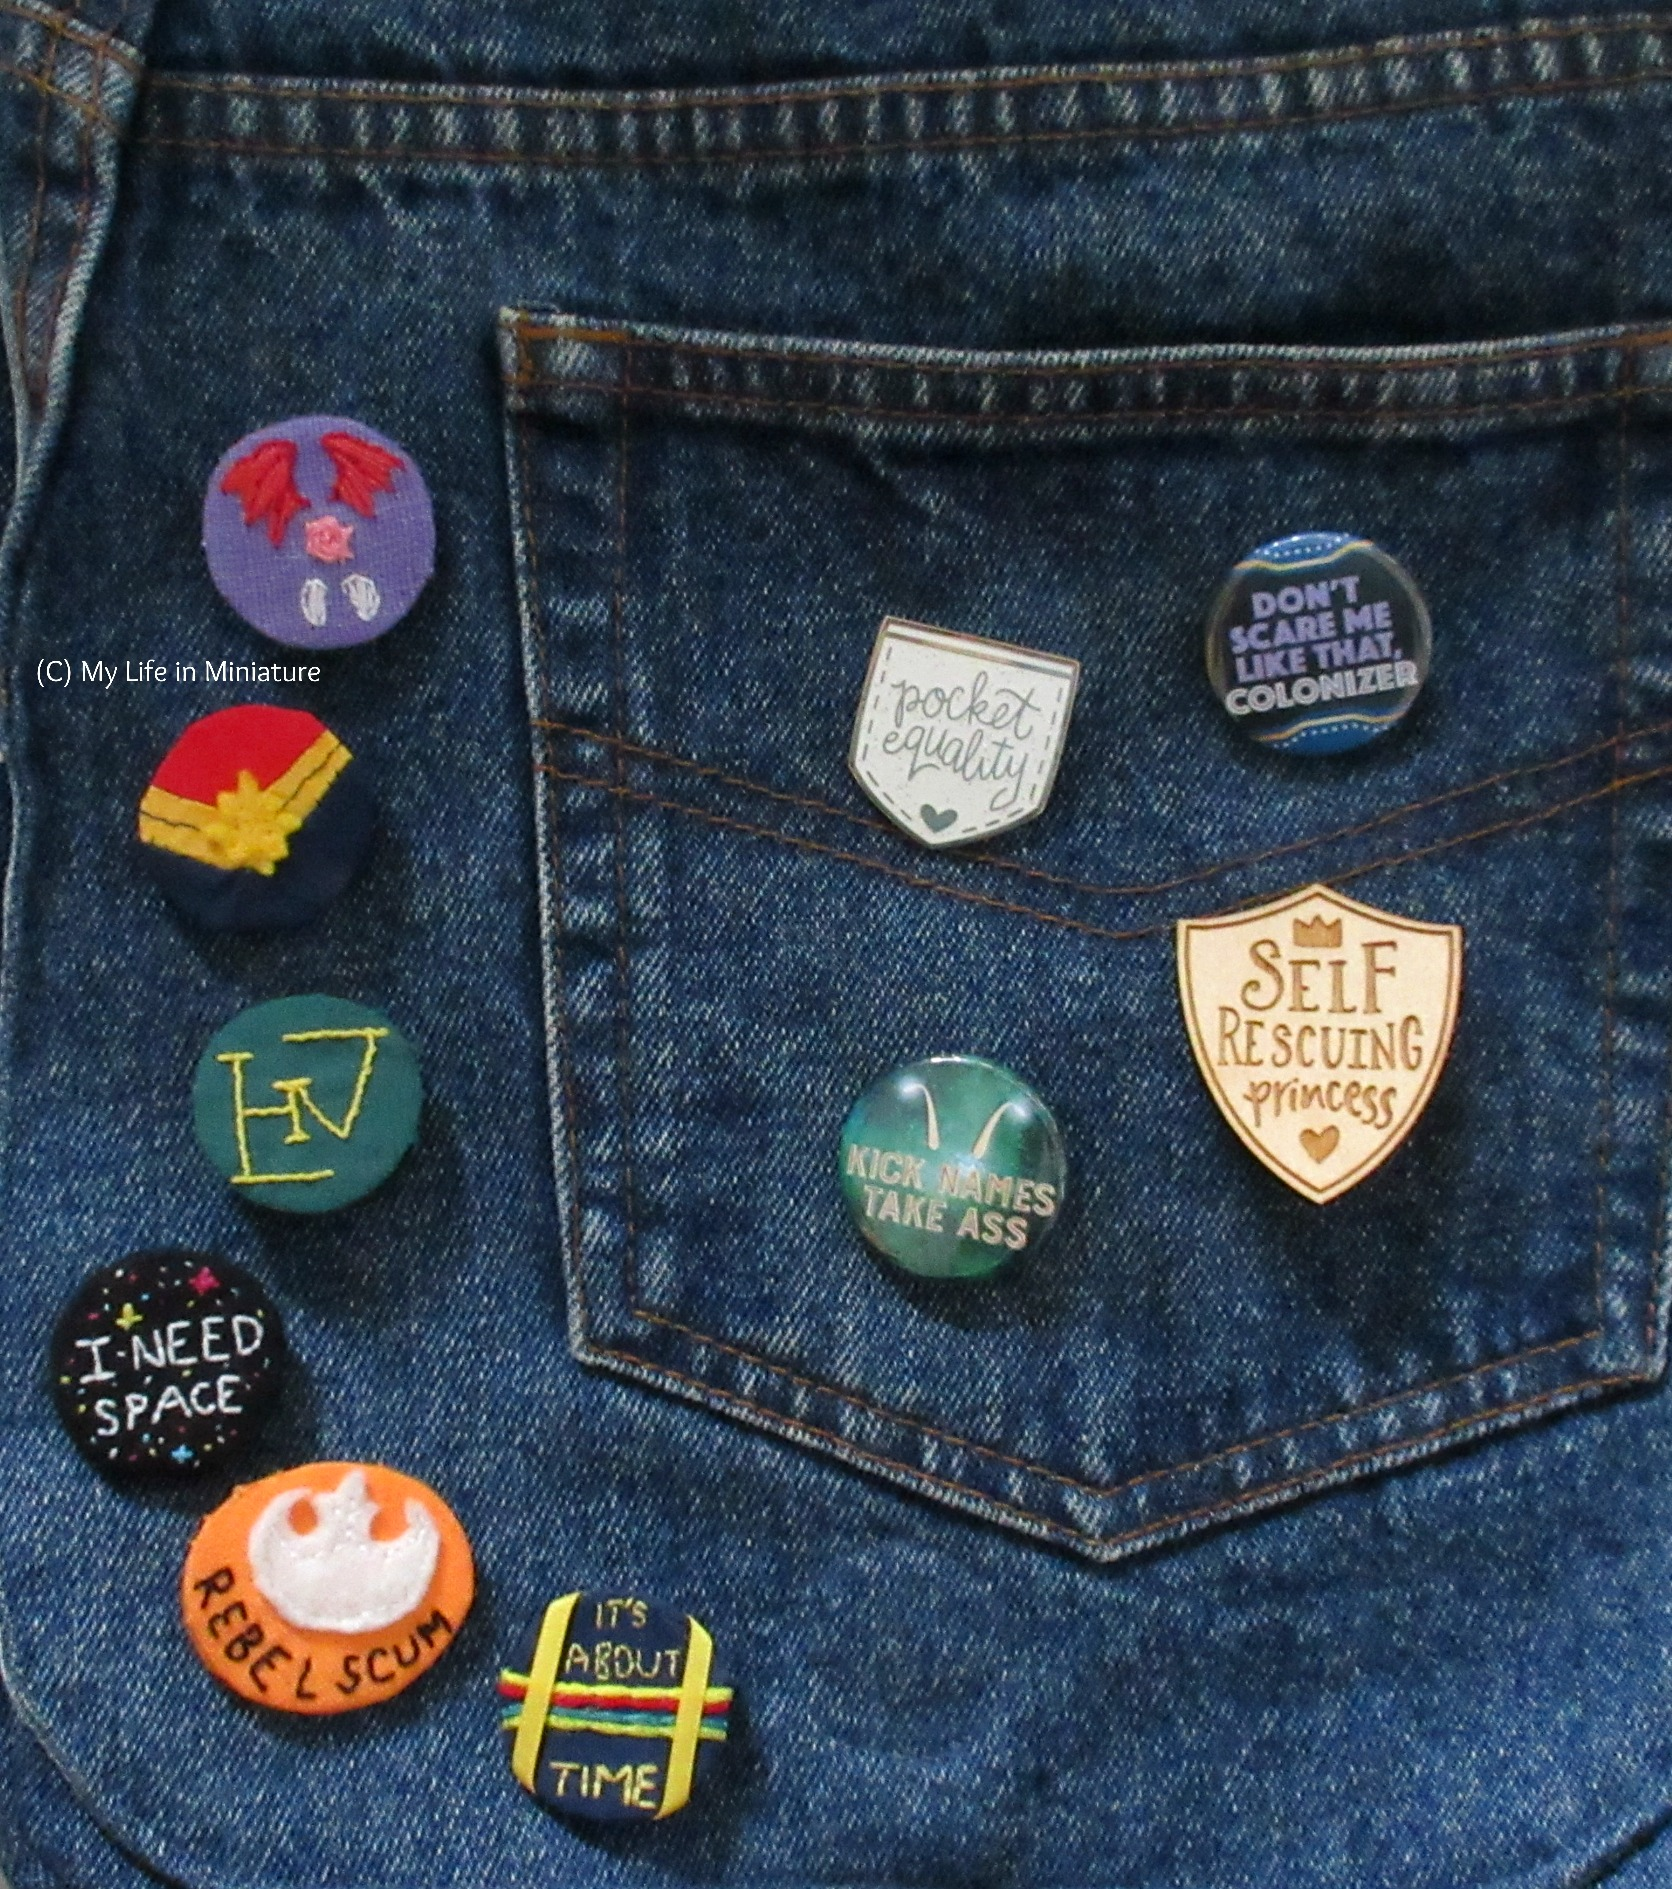 The badge is pinned onto a denim bag, alongside a variety of other badges and pins - both handmade and purchased.